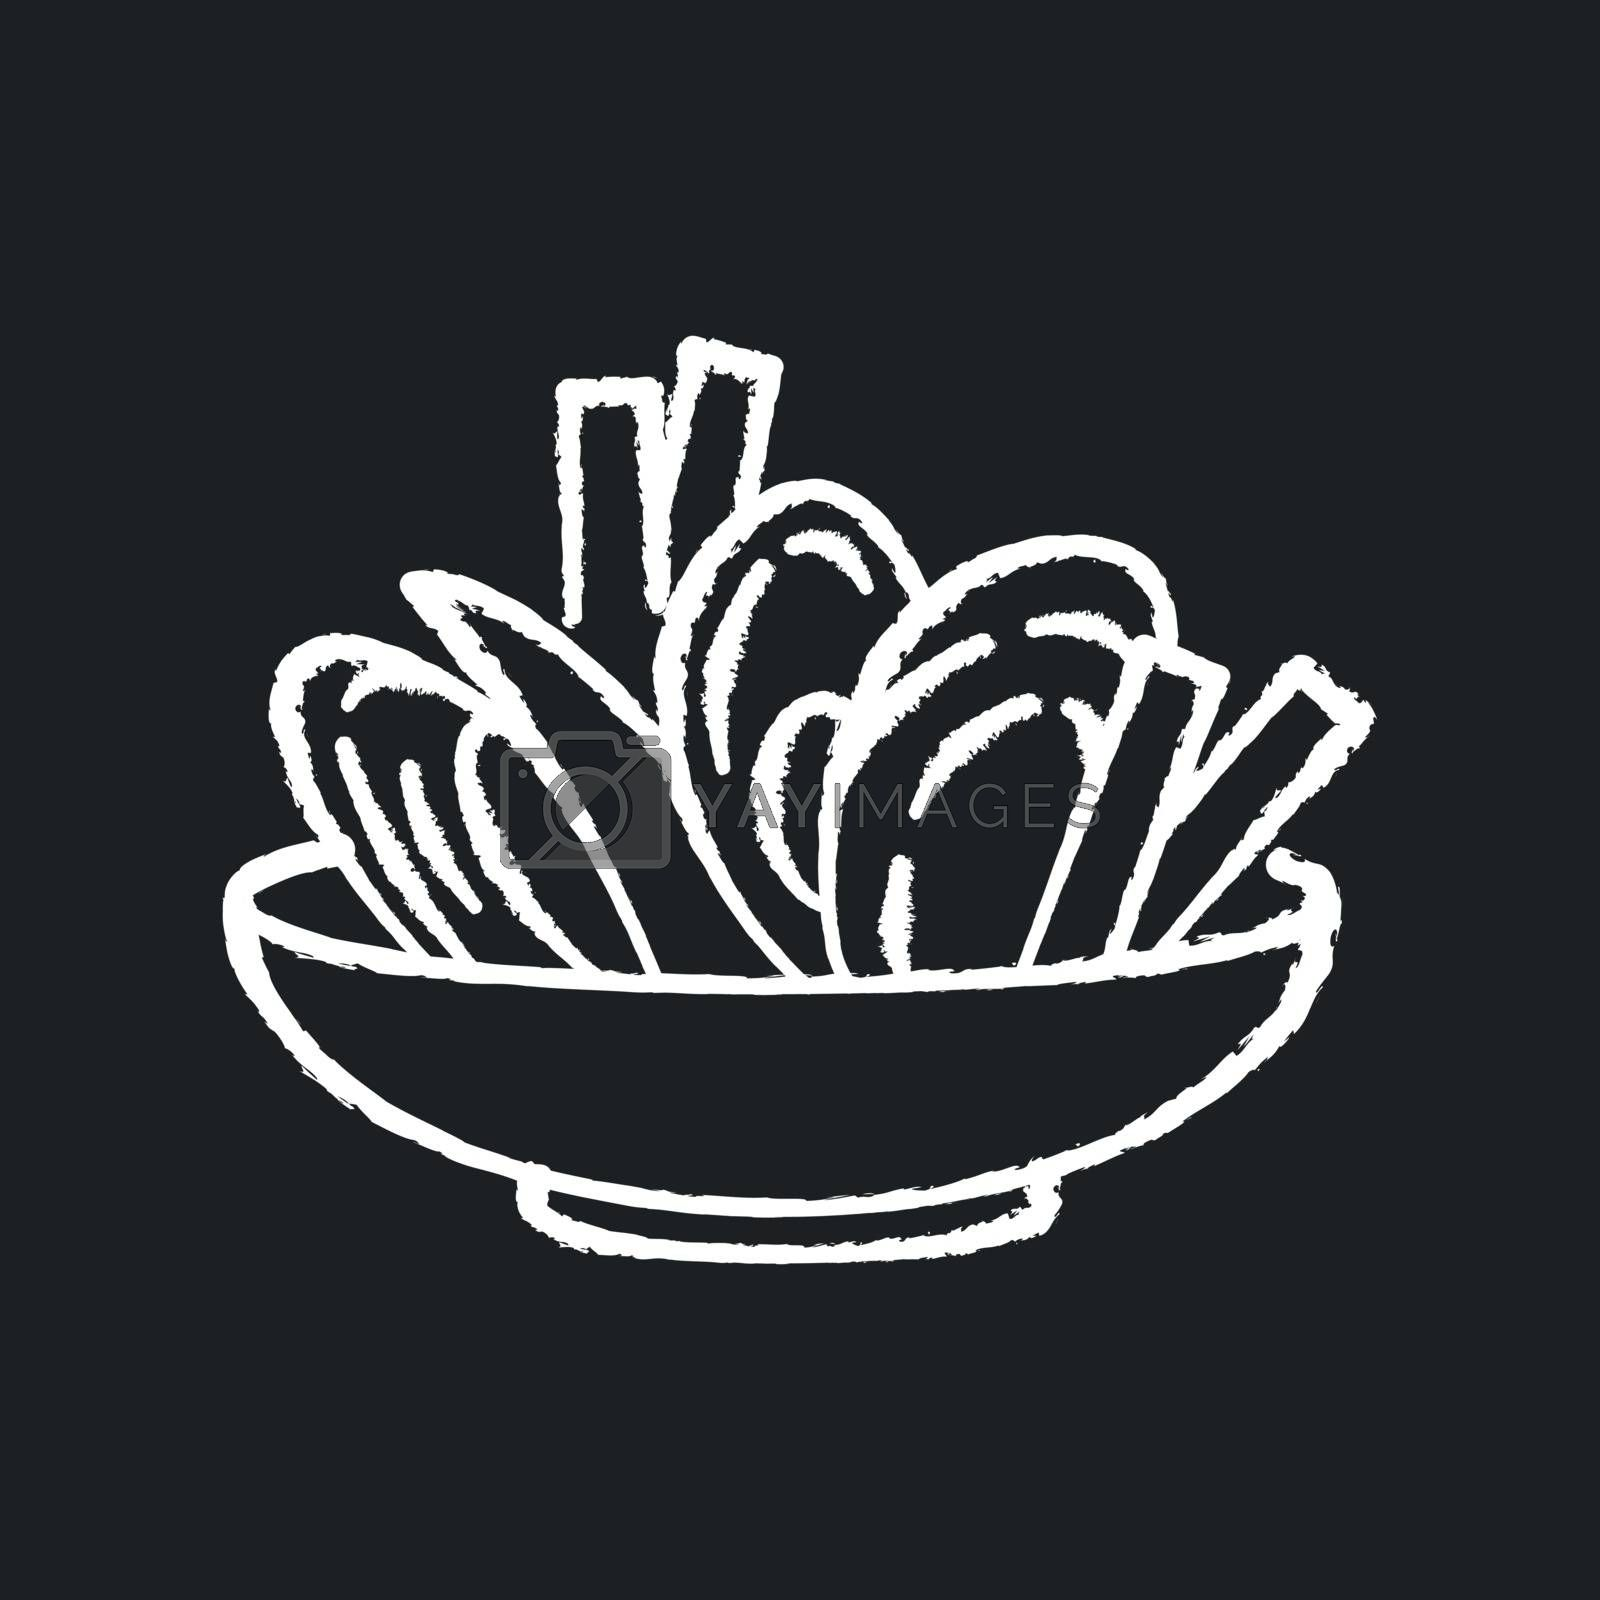 Moules frites chalk white icon on black background. Traditional mussels and chips. French national meal. Brussel culinary. European cuisine recipe. Isolated vector chalkboard illustration